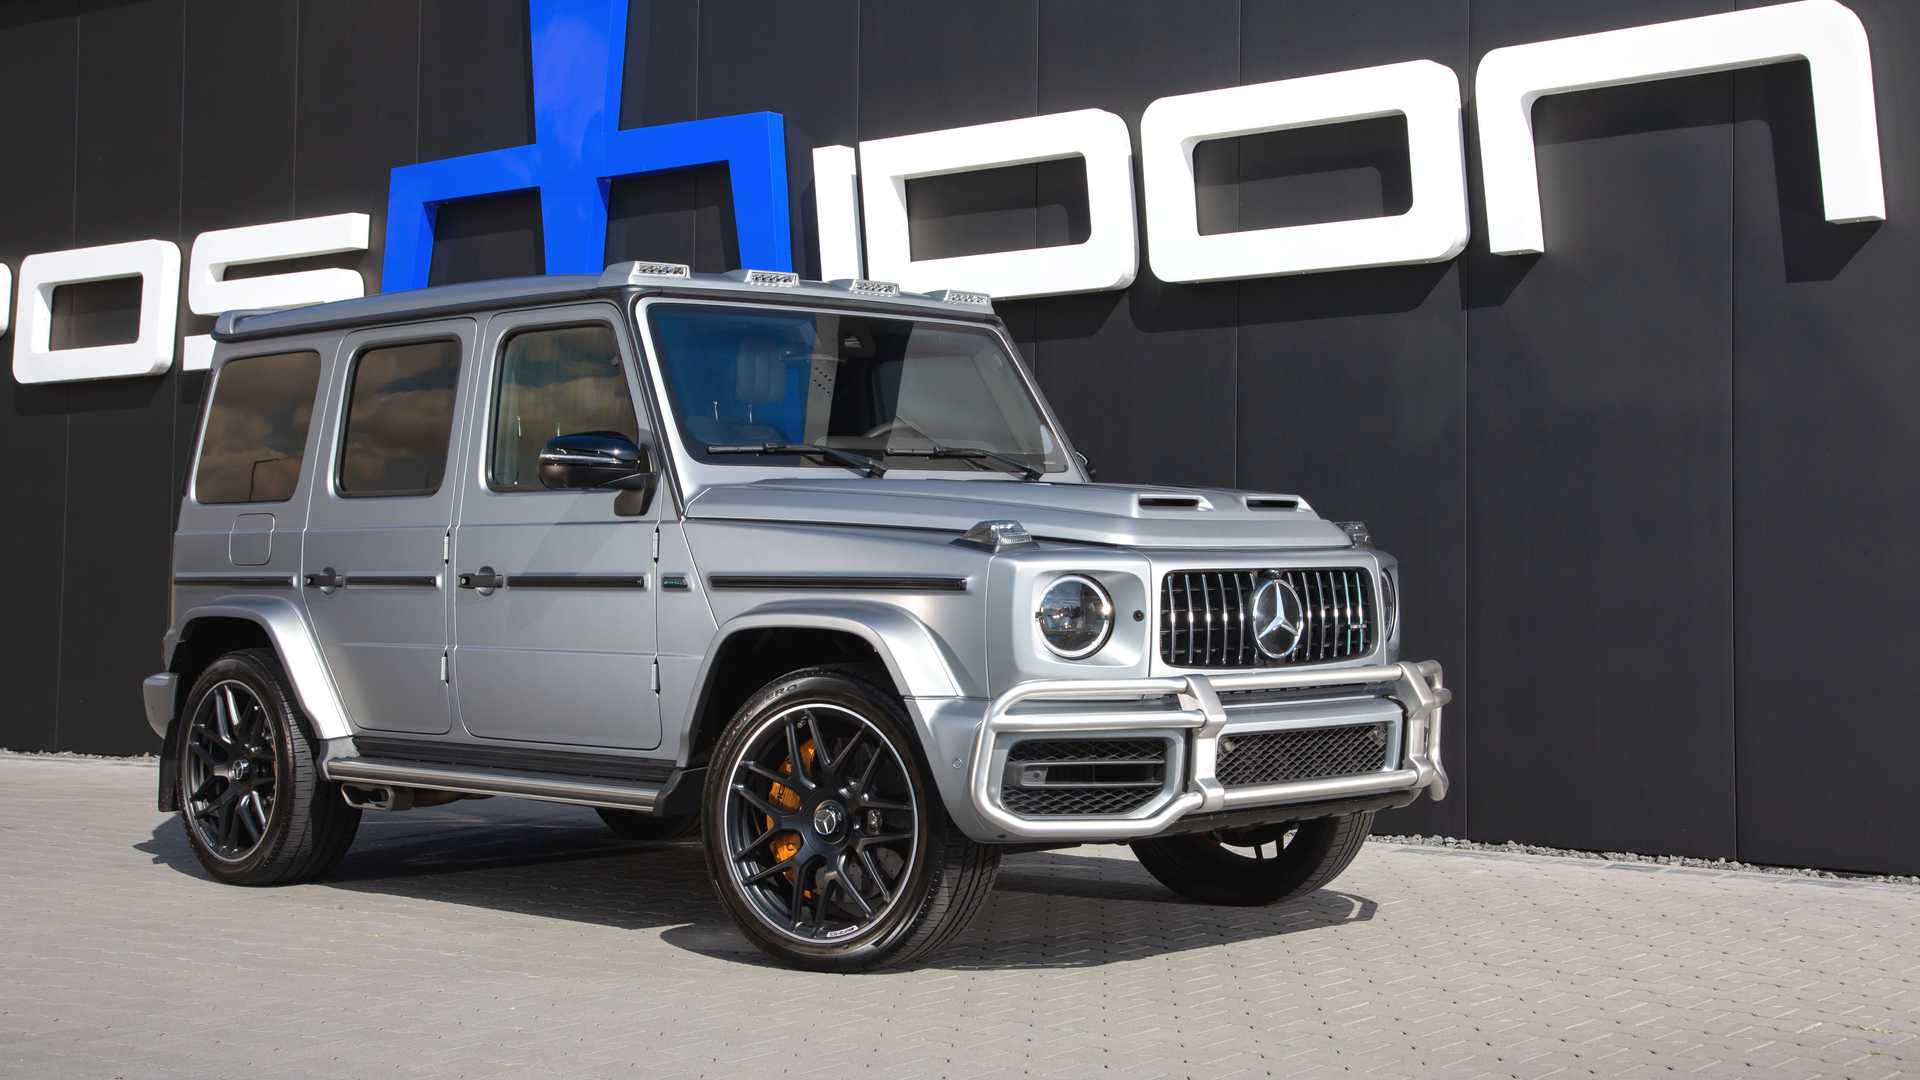 Remember the olden days, when people still preferred to drive their Mercedes G-Class vehicles away from trodden paths, rather than turning them into questionable track tools with all the agility of an elephant and all the aerodynamics of a brick? Times surely have changed. Meet Posaidon Mercedes-AMG G63, a G-Wagen that might just outrun an AMG GT R.